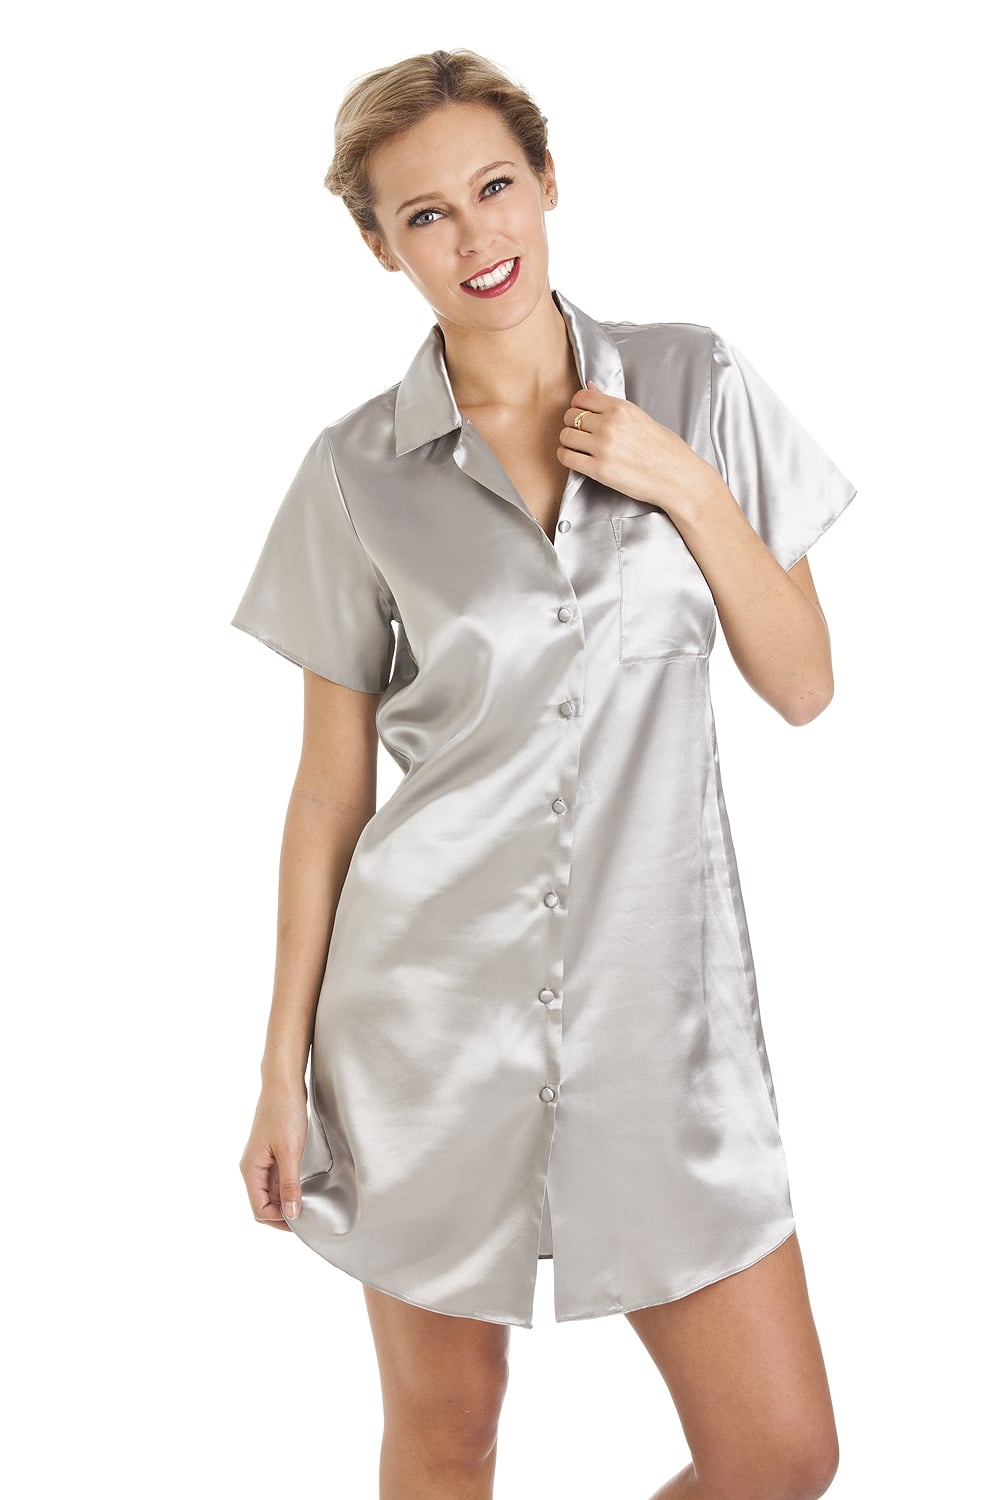 de338c04b7 Camille Light Grey Knee Length Satin Nightshirt